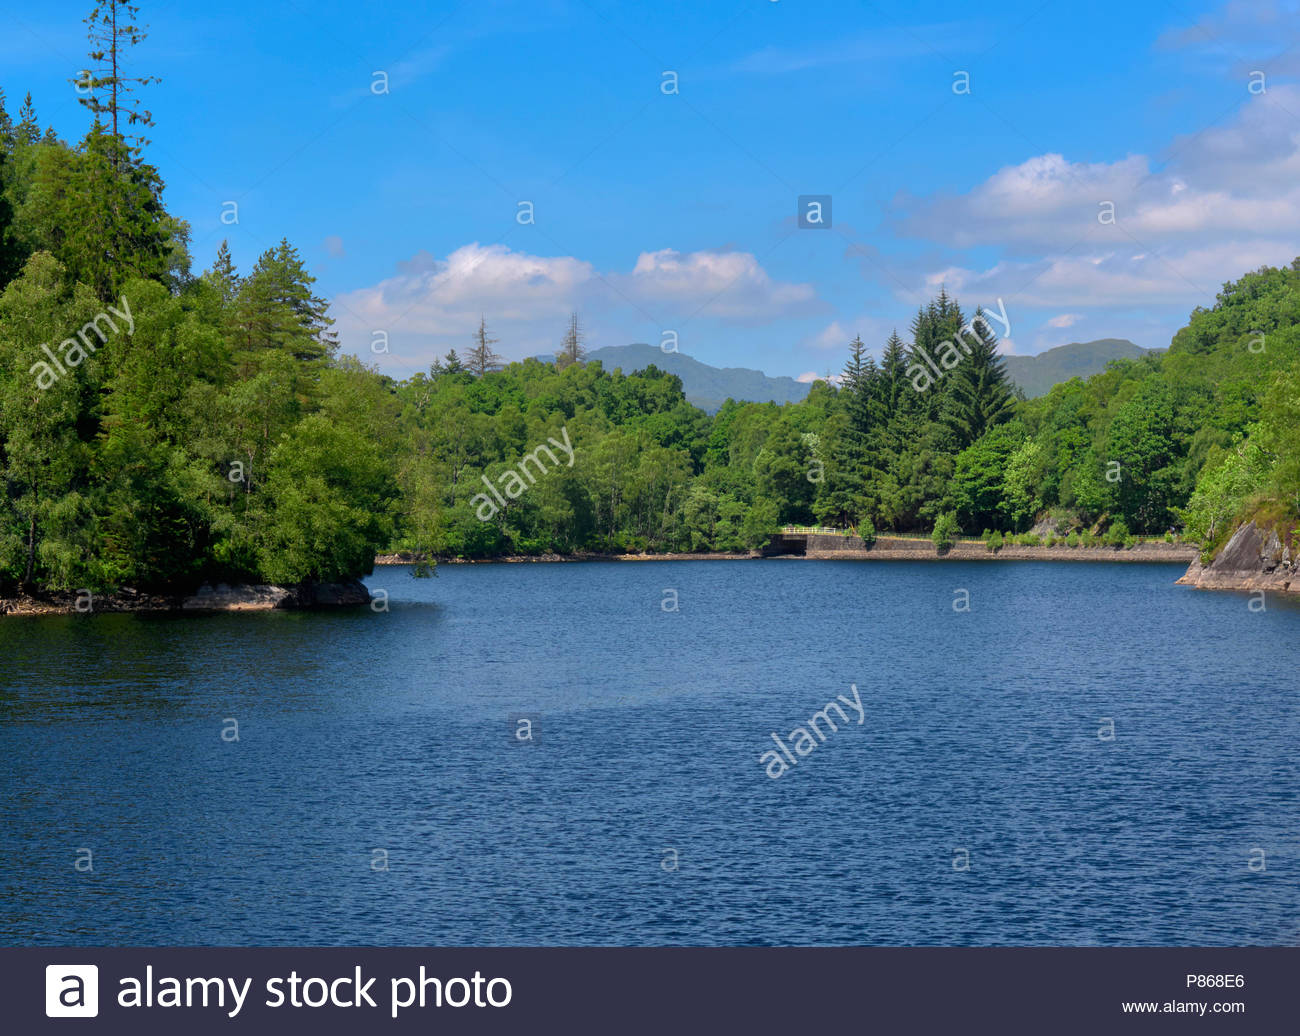 A scottish landscape overlooking loch katrine in the trossachs in scotland uk - Stock Image